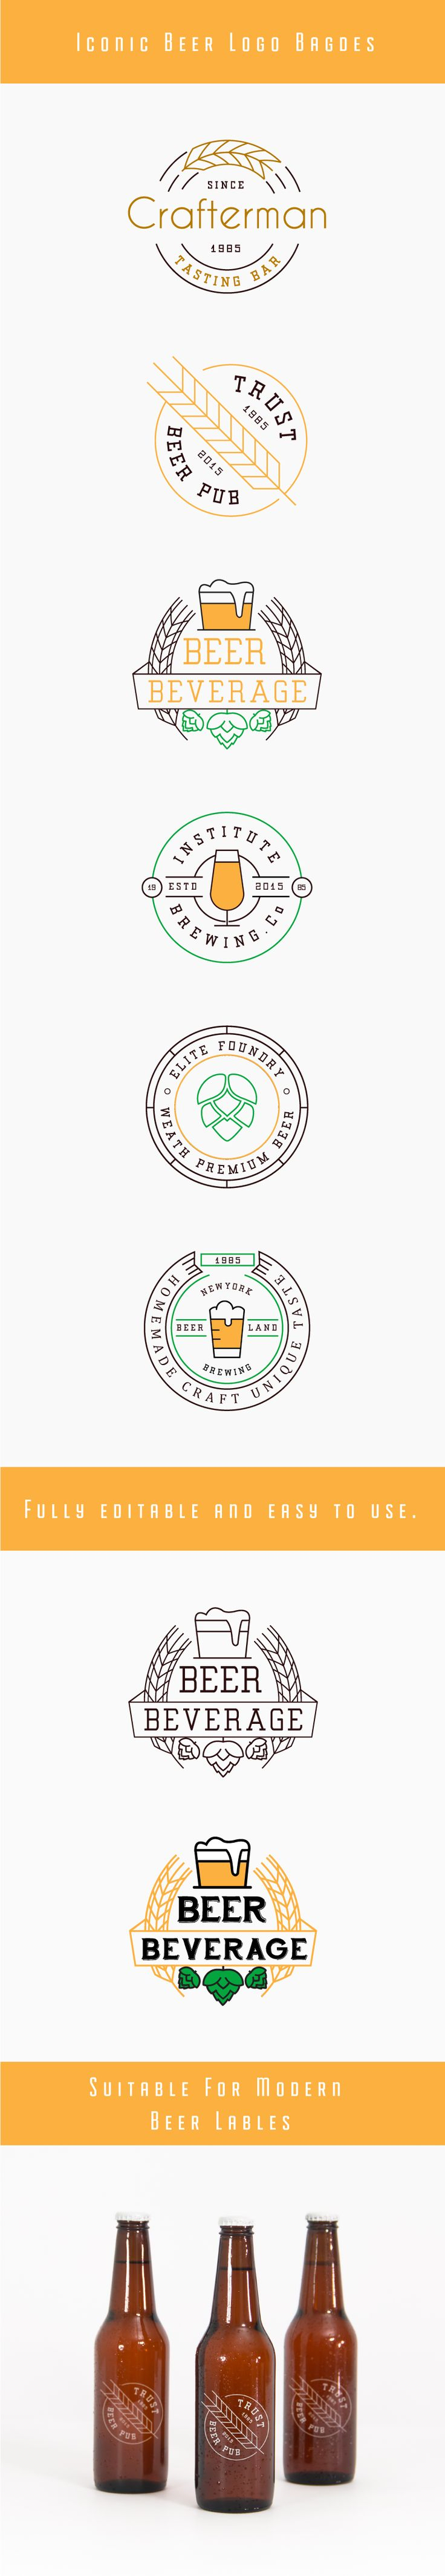 Fspallato: I like the simplicity of these badges. Beer Logo Badges on Behance